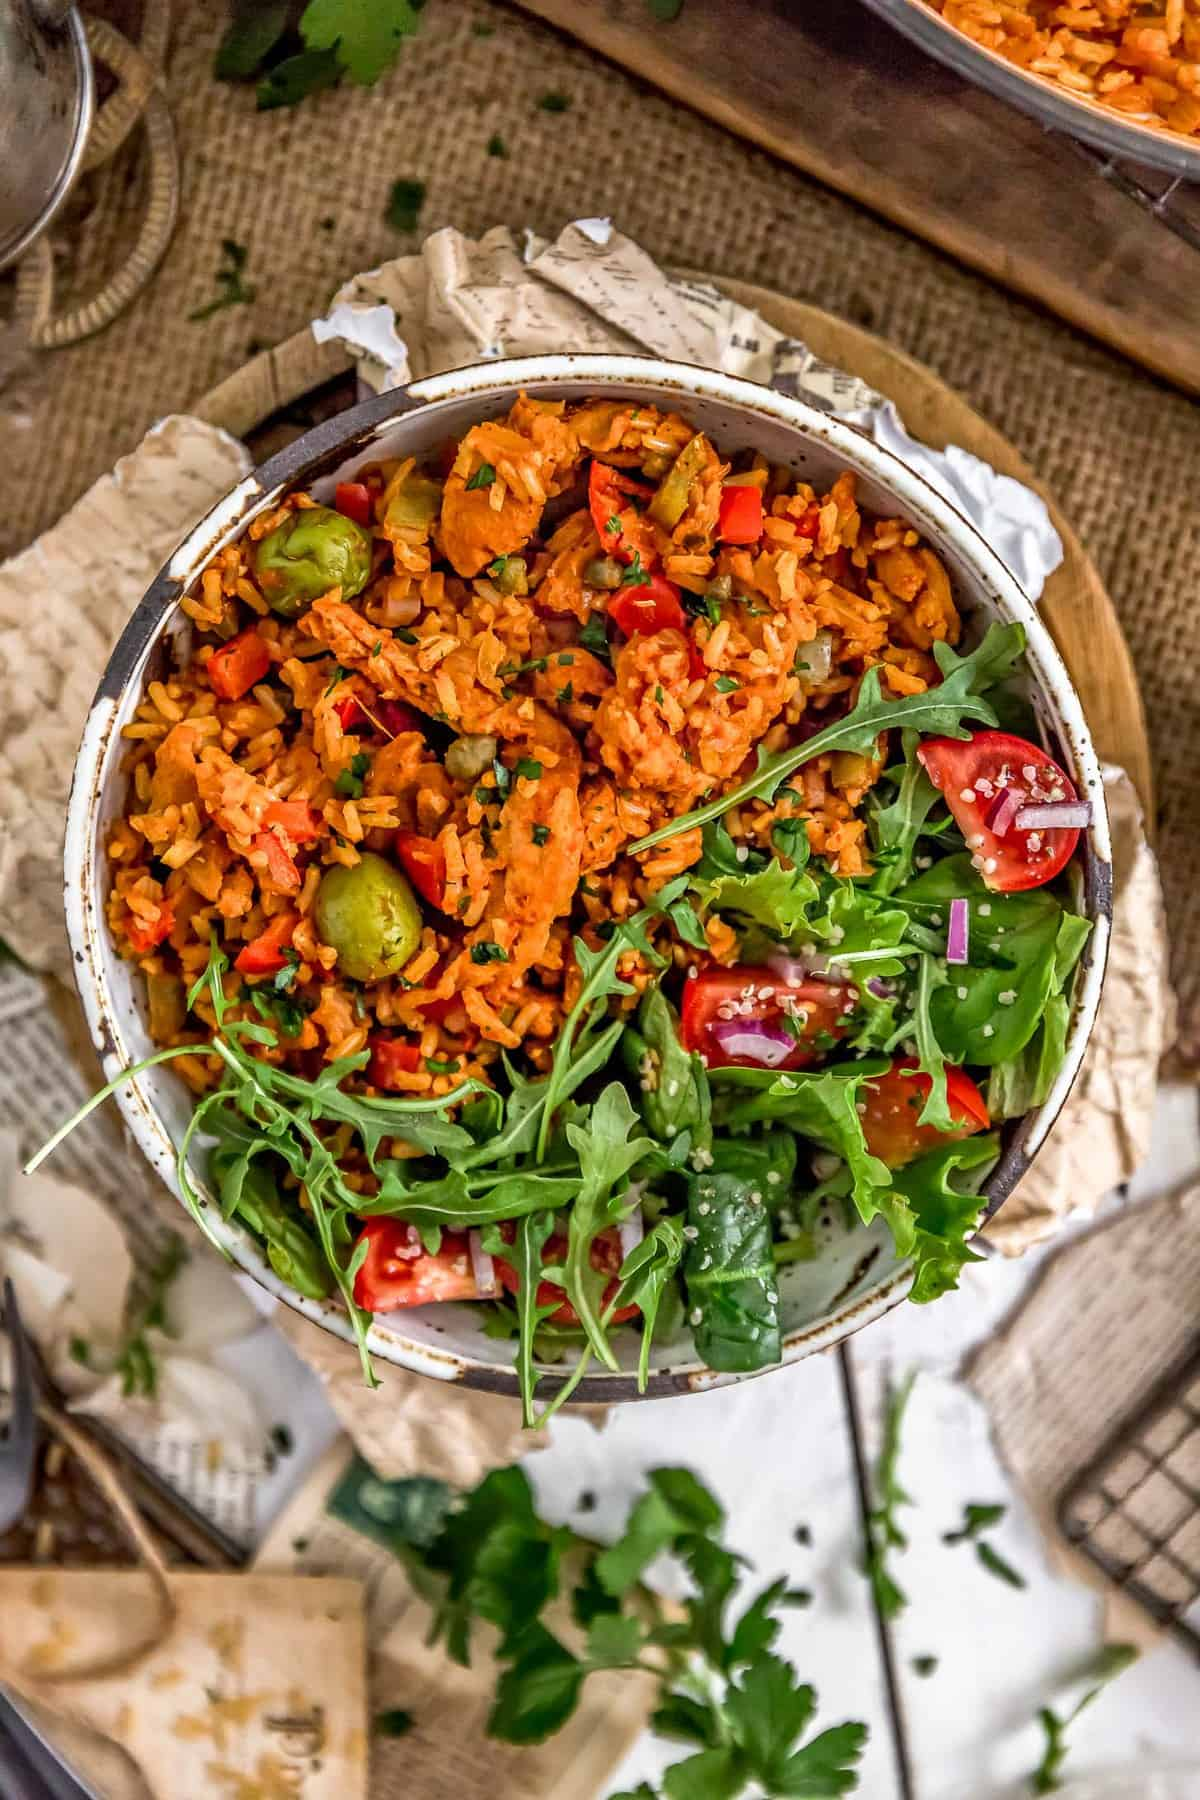 Bowl of Vegan Arroz on Pollo